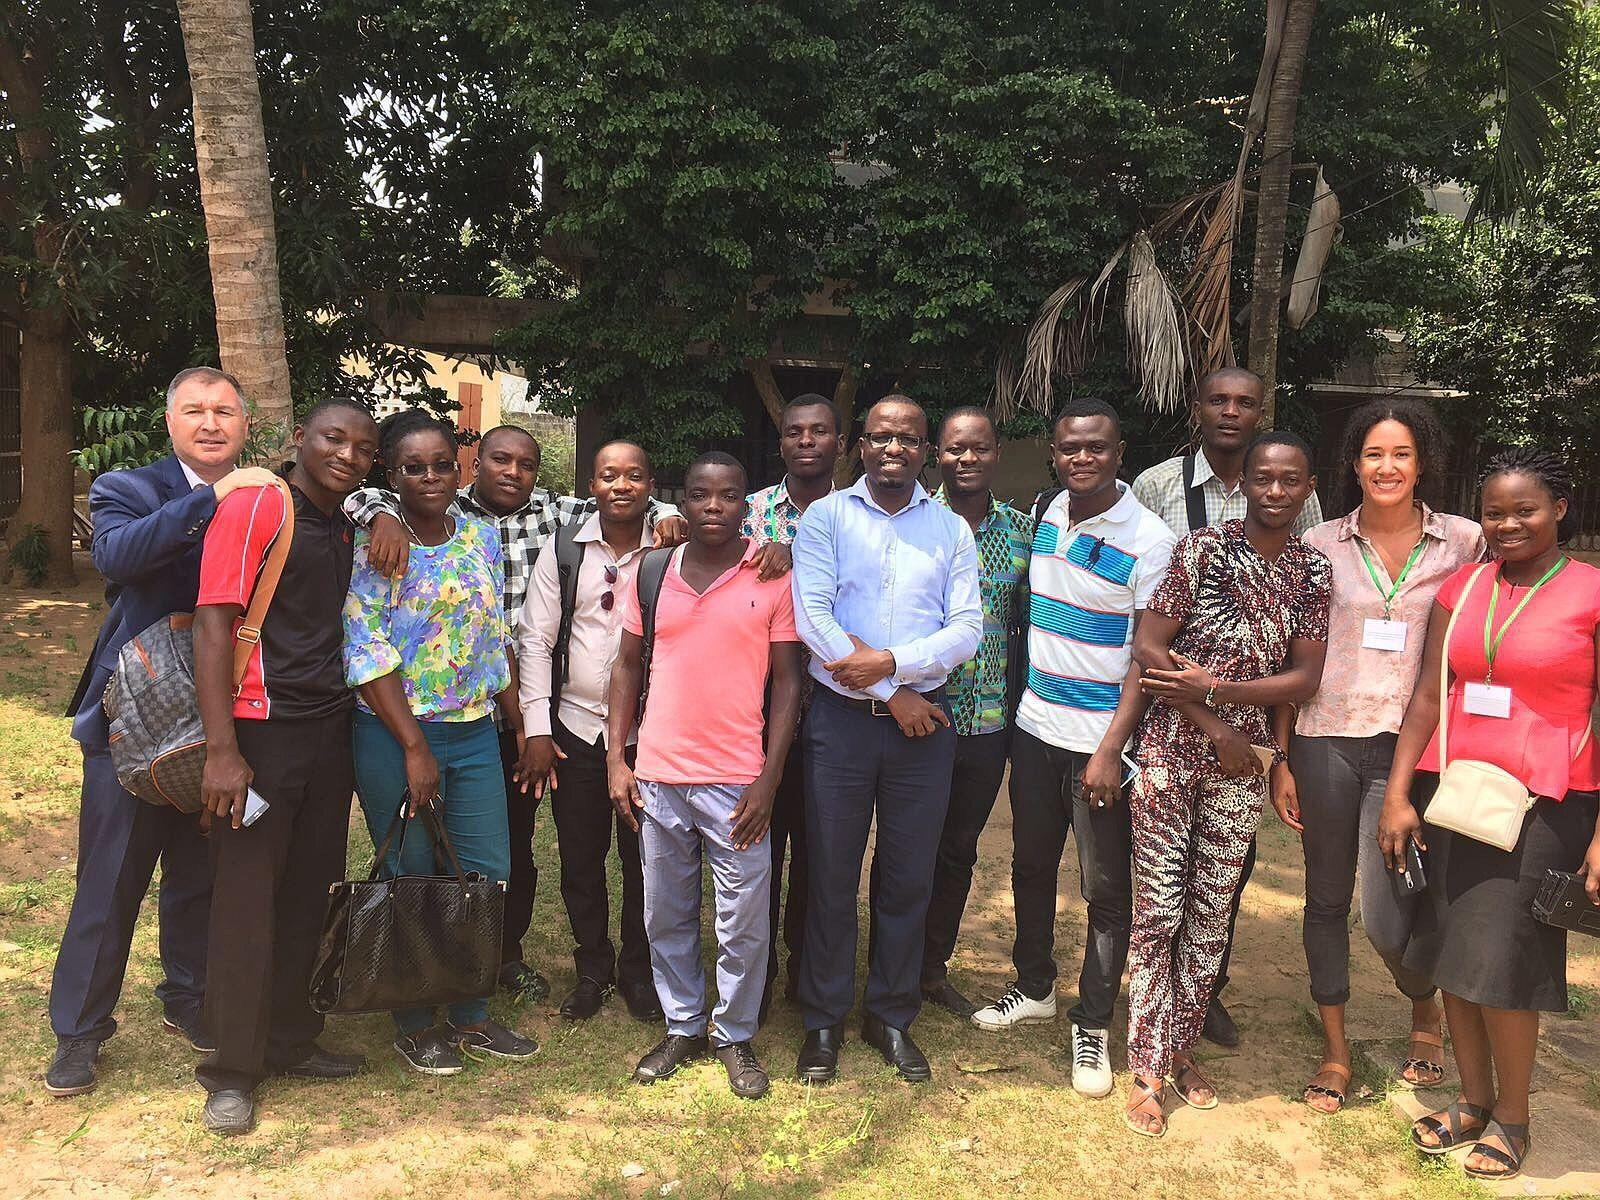 The data collection team and CMNH staff in Lomé, Togo